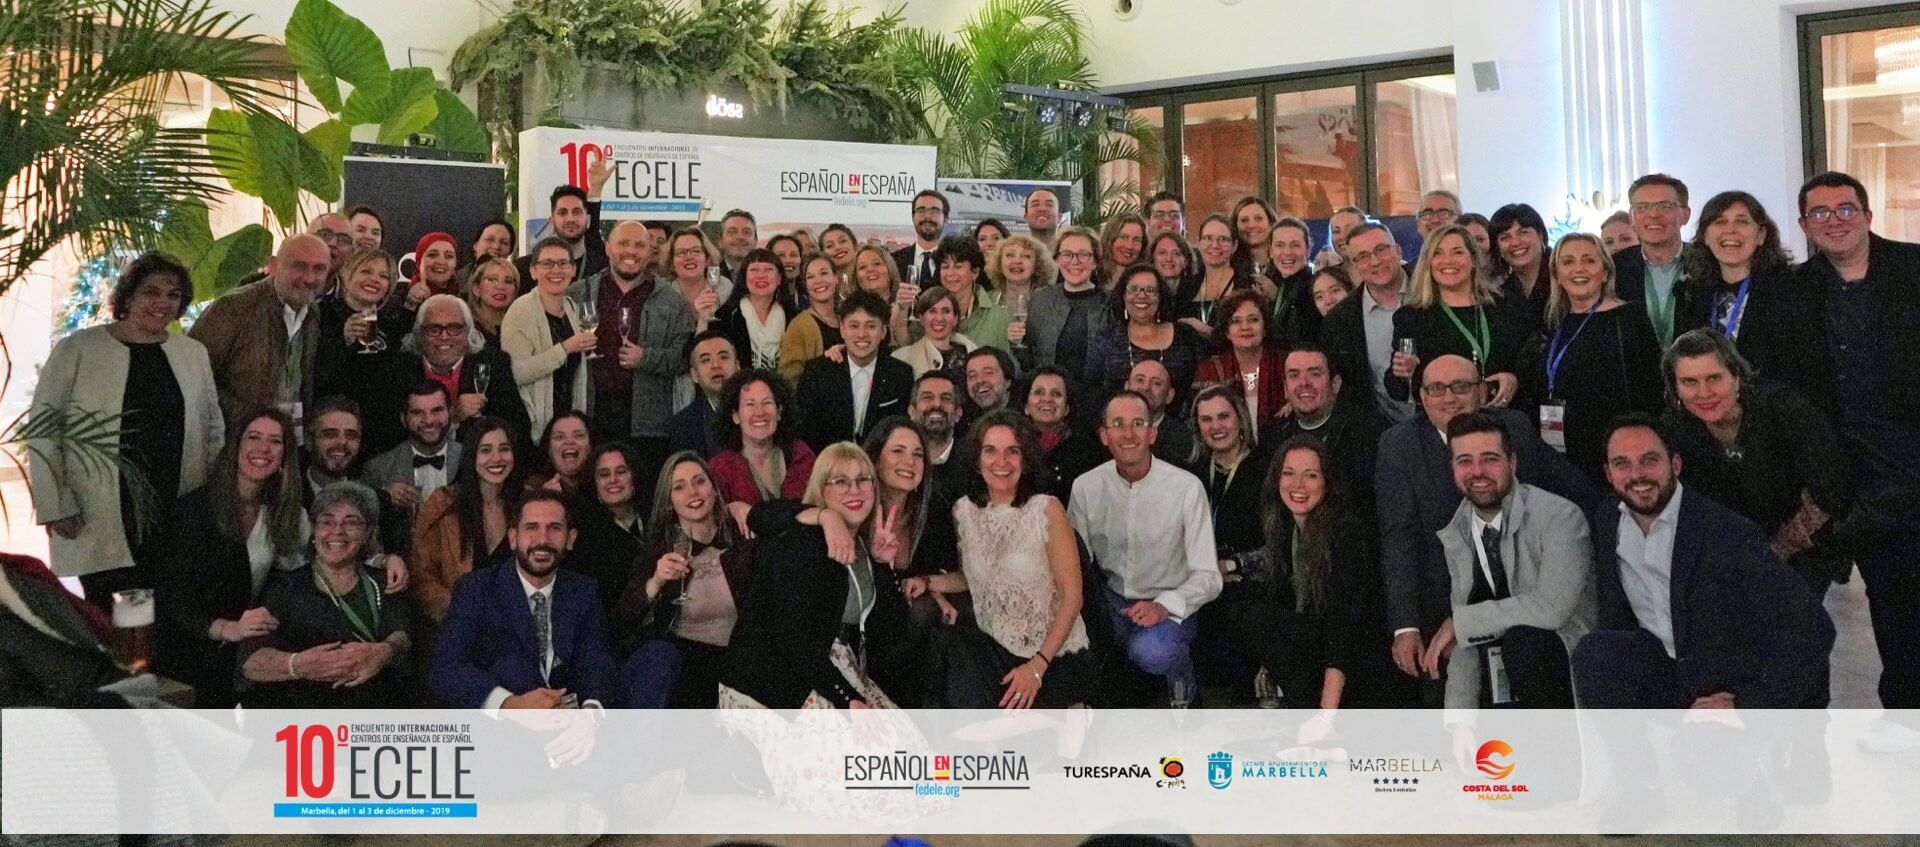 ECELE 2019 Marbella: This is how the ELE meeting went